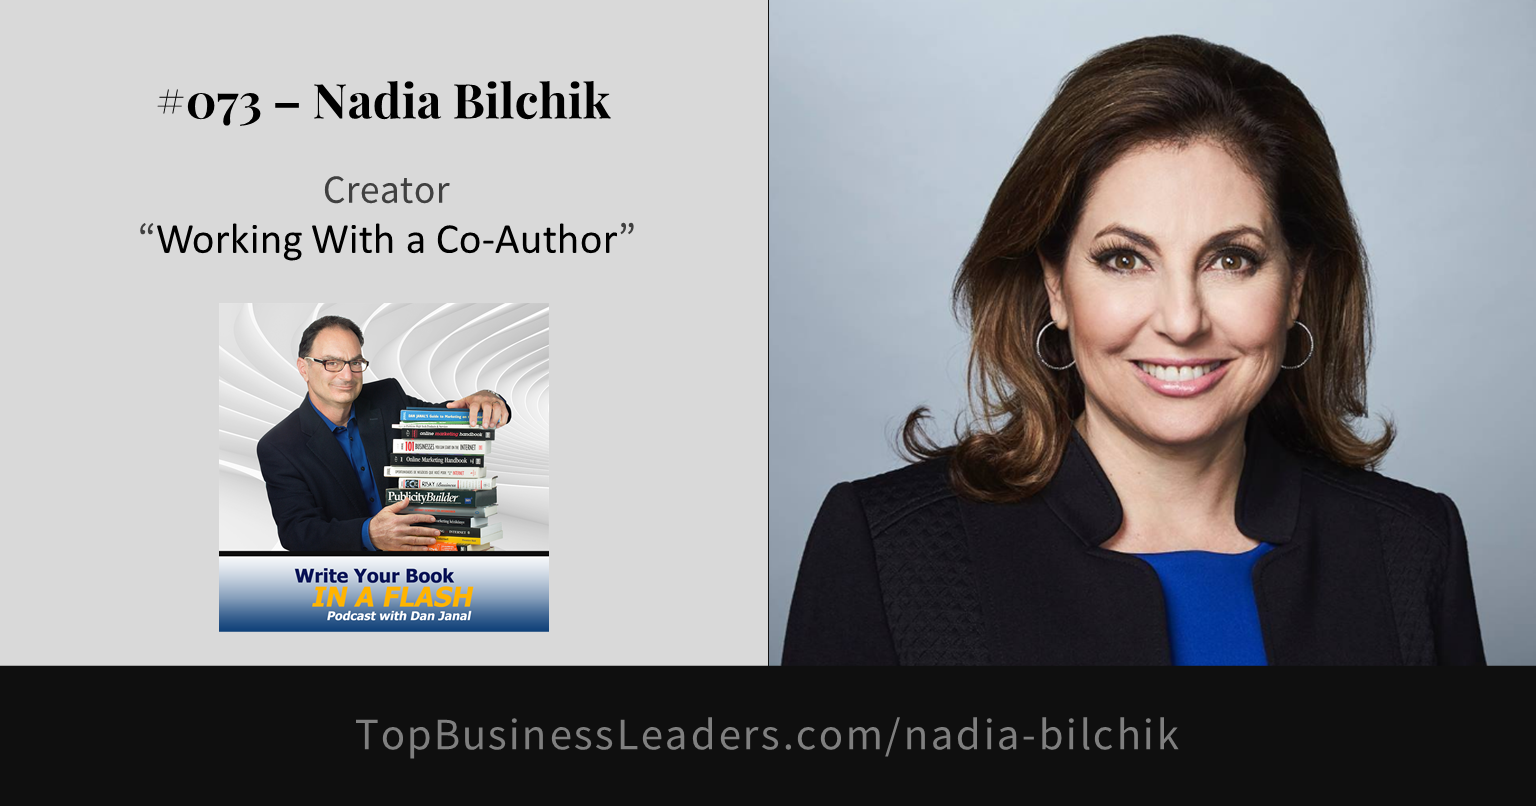 nadia-bilchik-topic-working-with-a-co-author